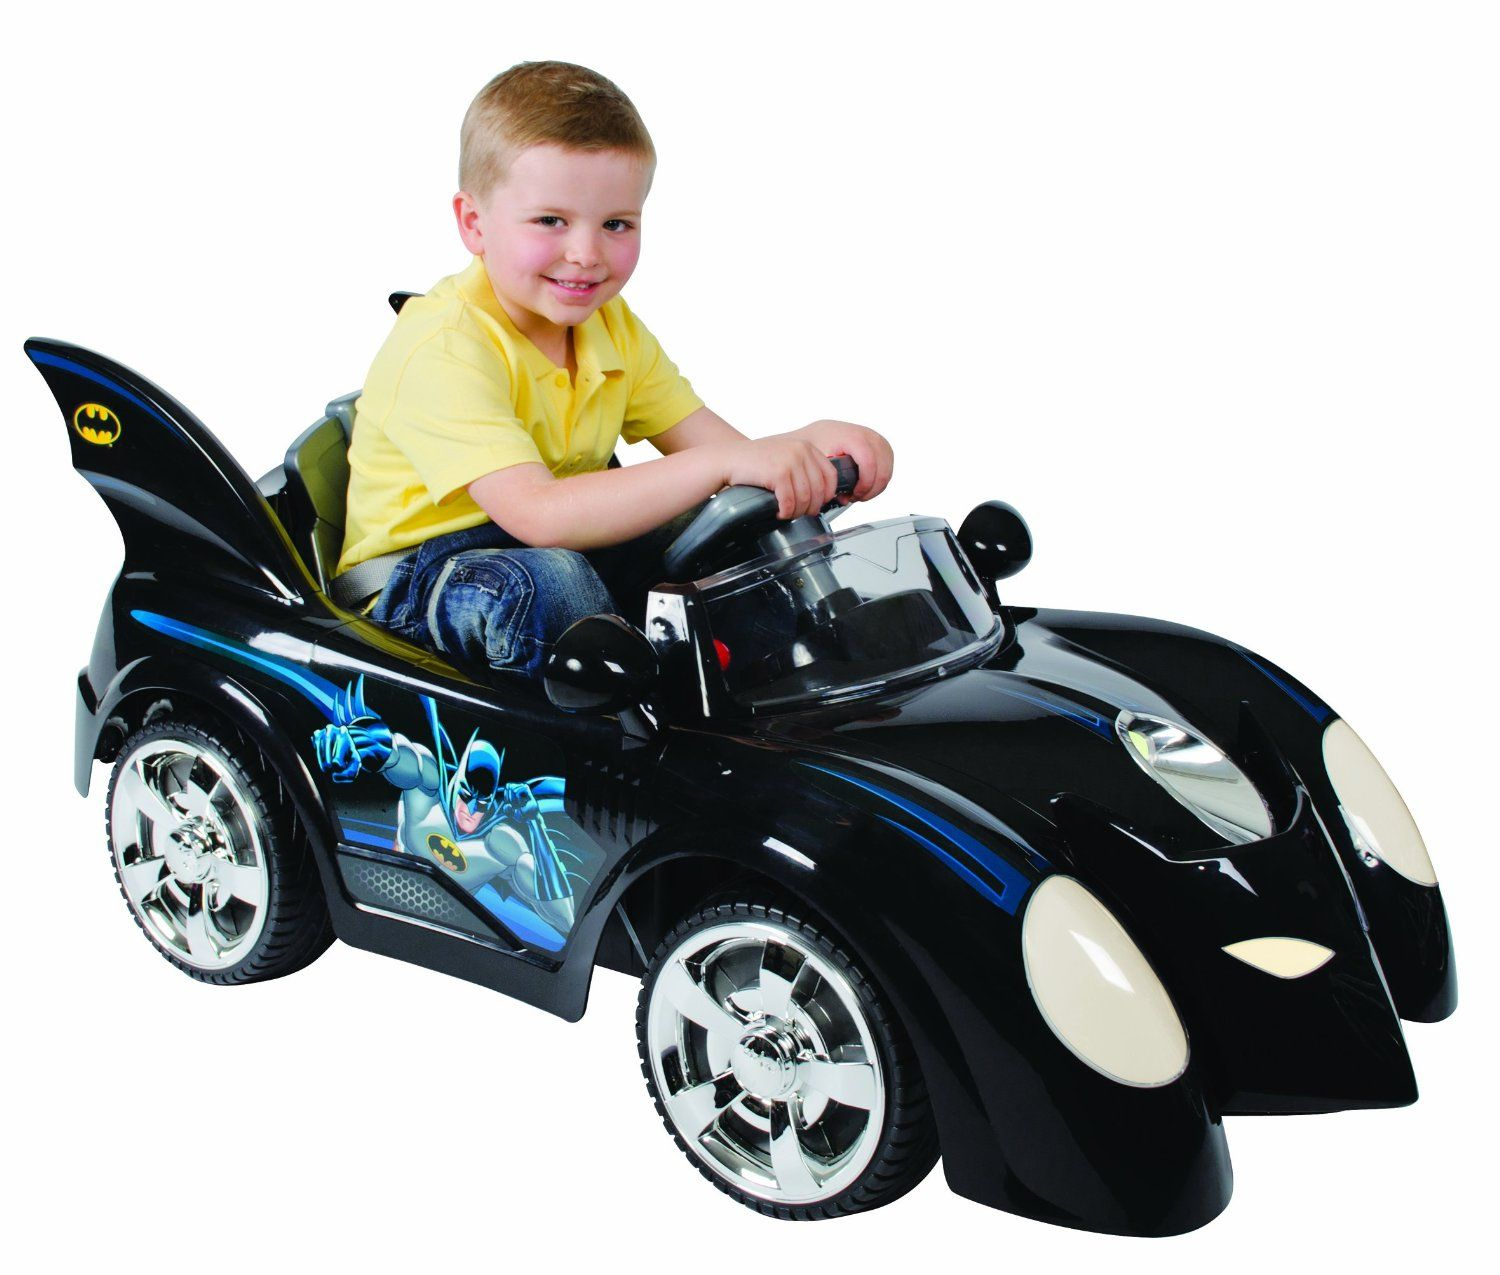 batman batmobile kids 6 volt electric ride on car is pure adam west nostalgia